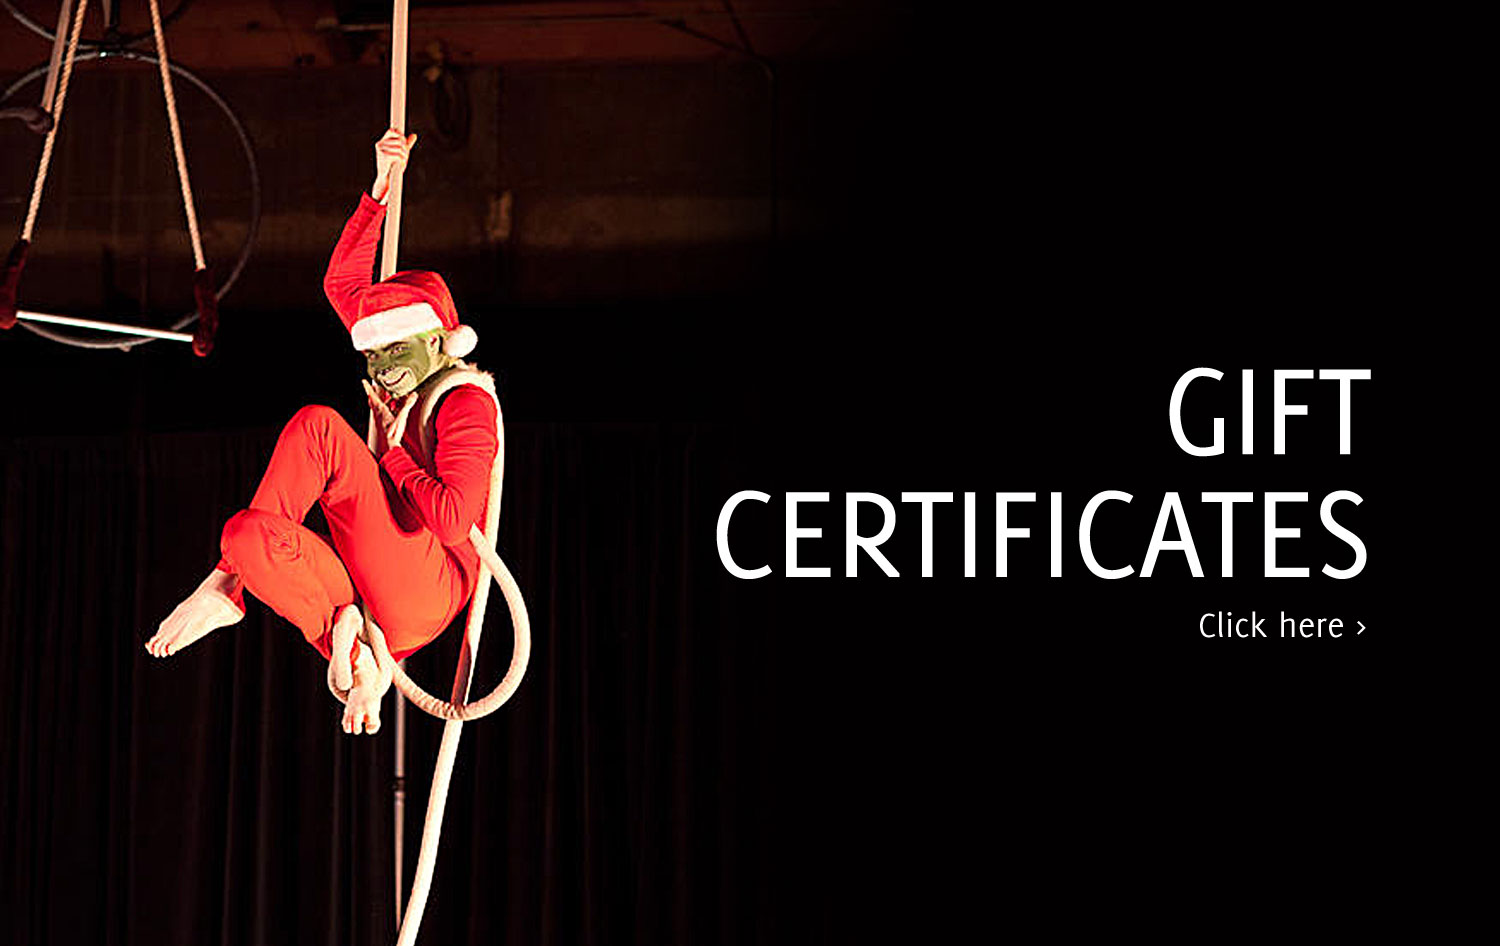 Gift Certificates available online!